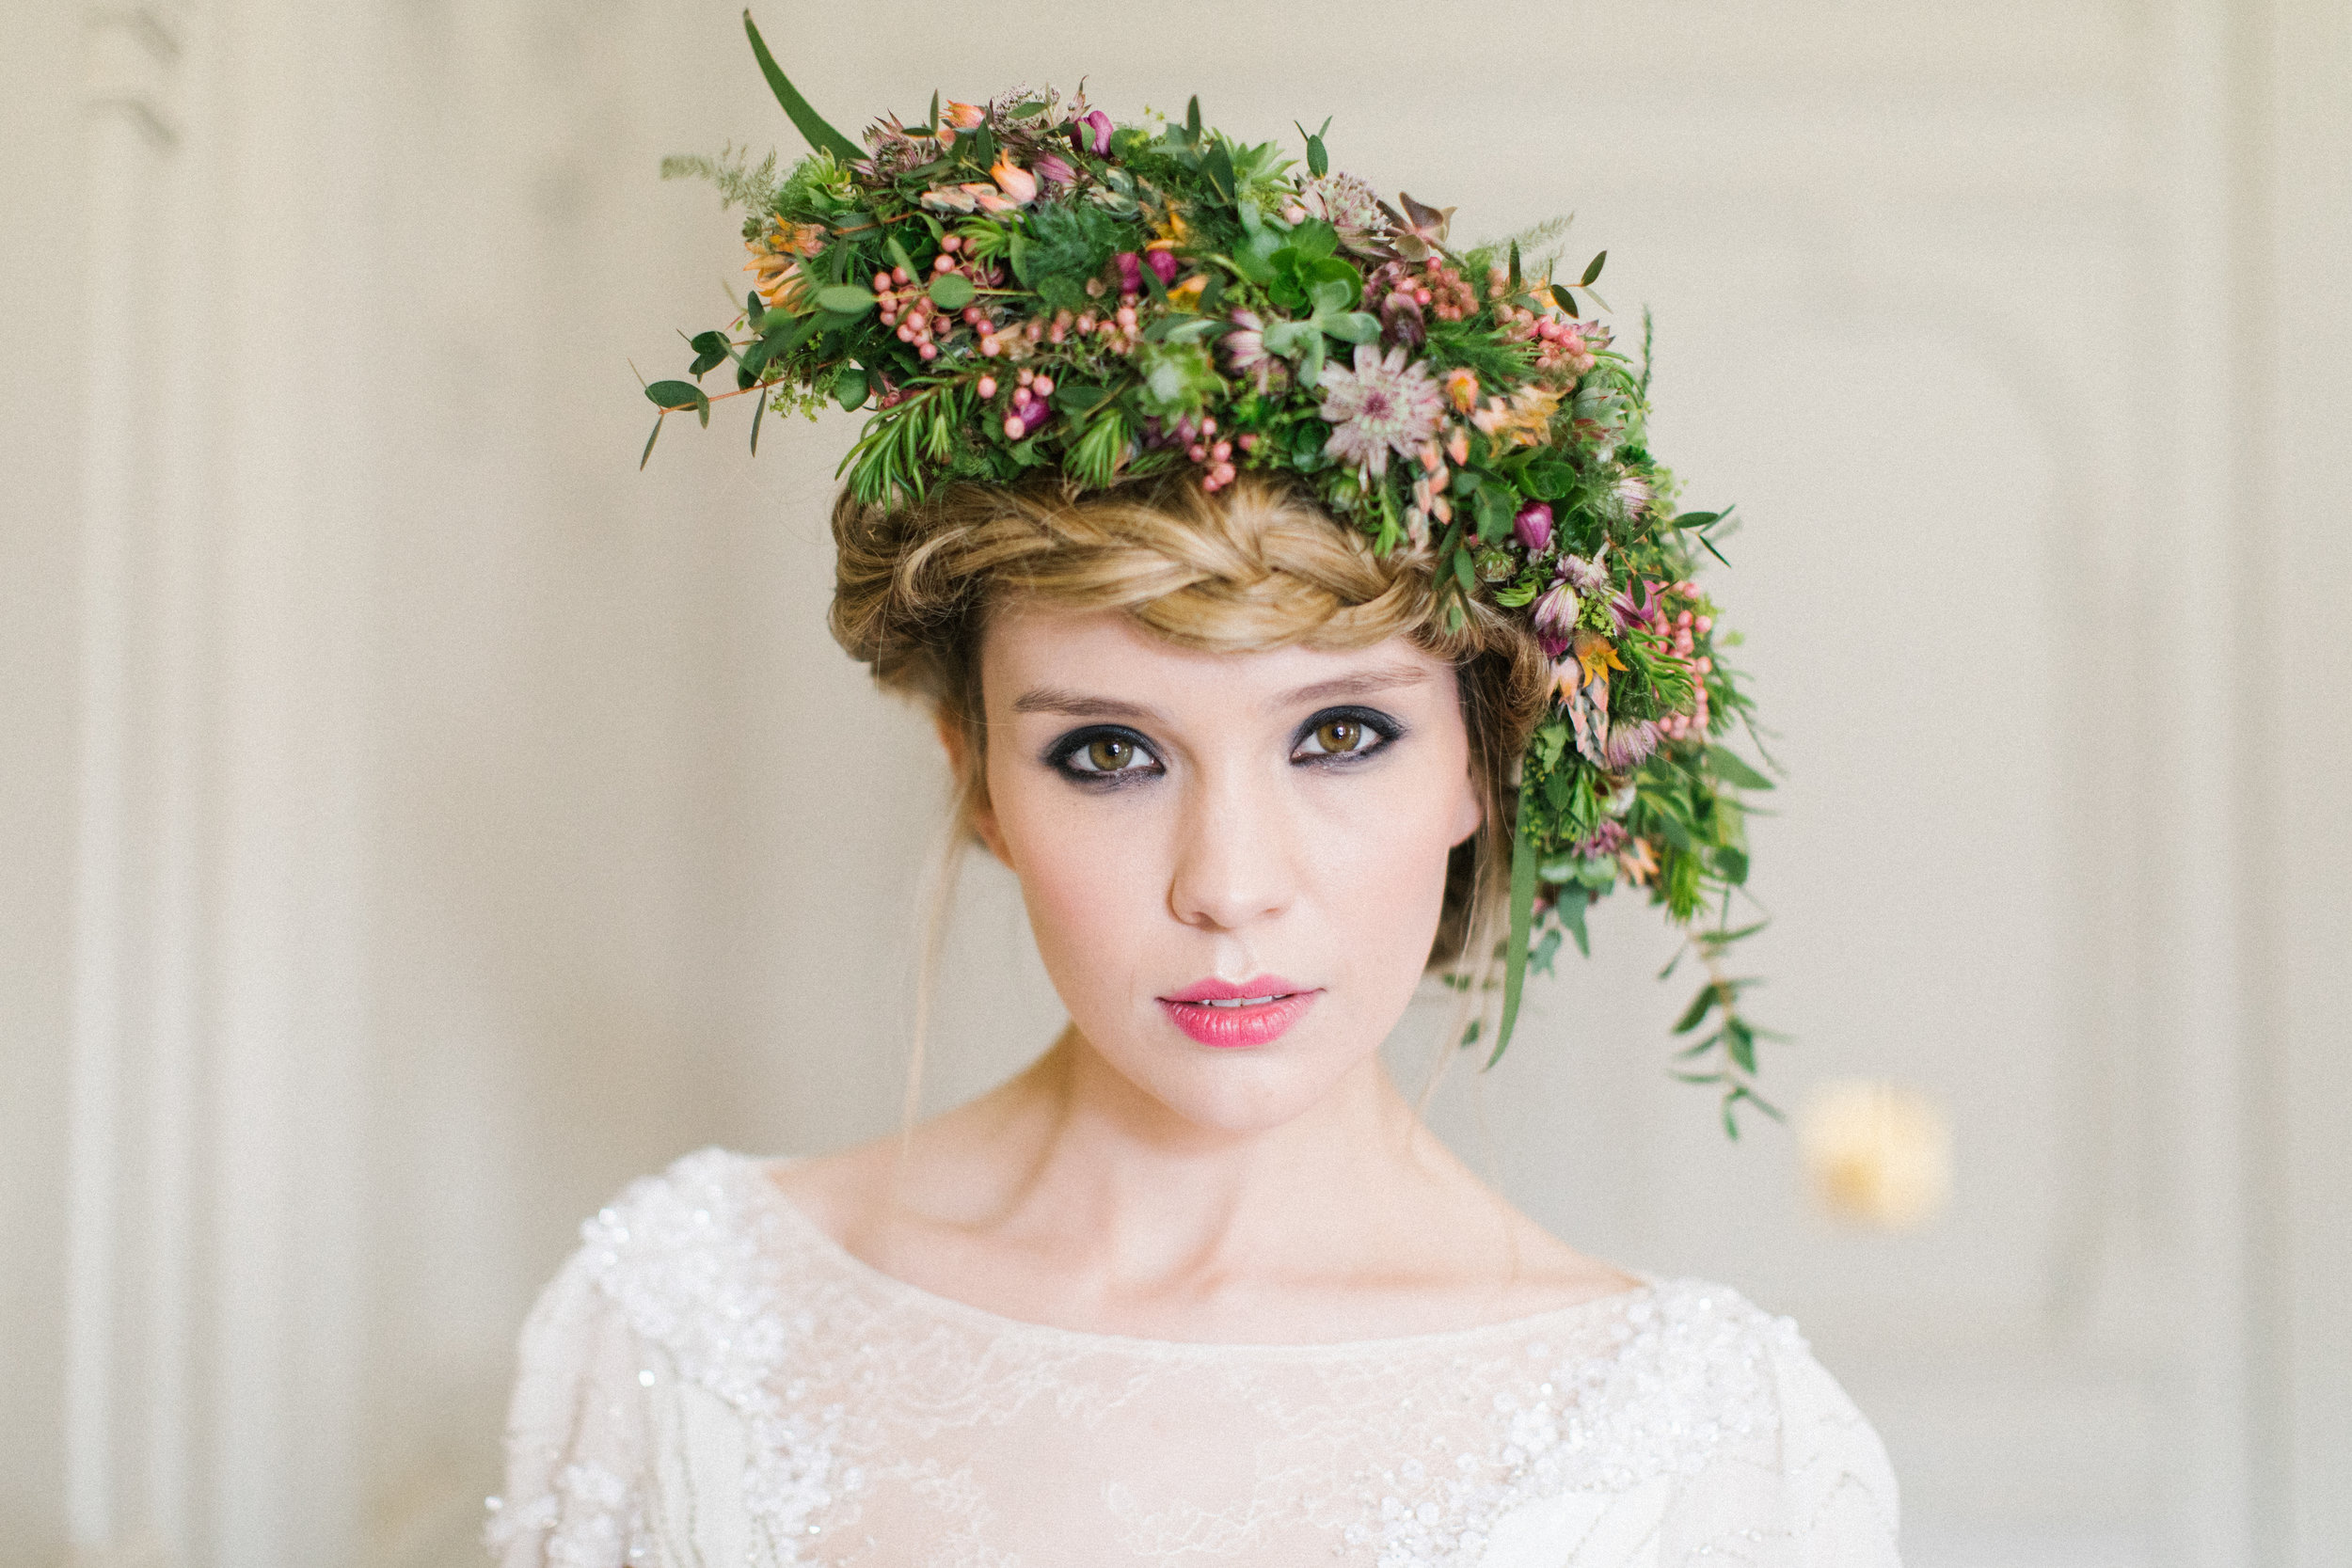 Large or small hair flowers are a special touch on the day. Working with you and the hairdresser is essential to create the look you want.